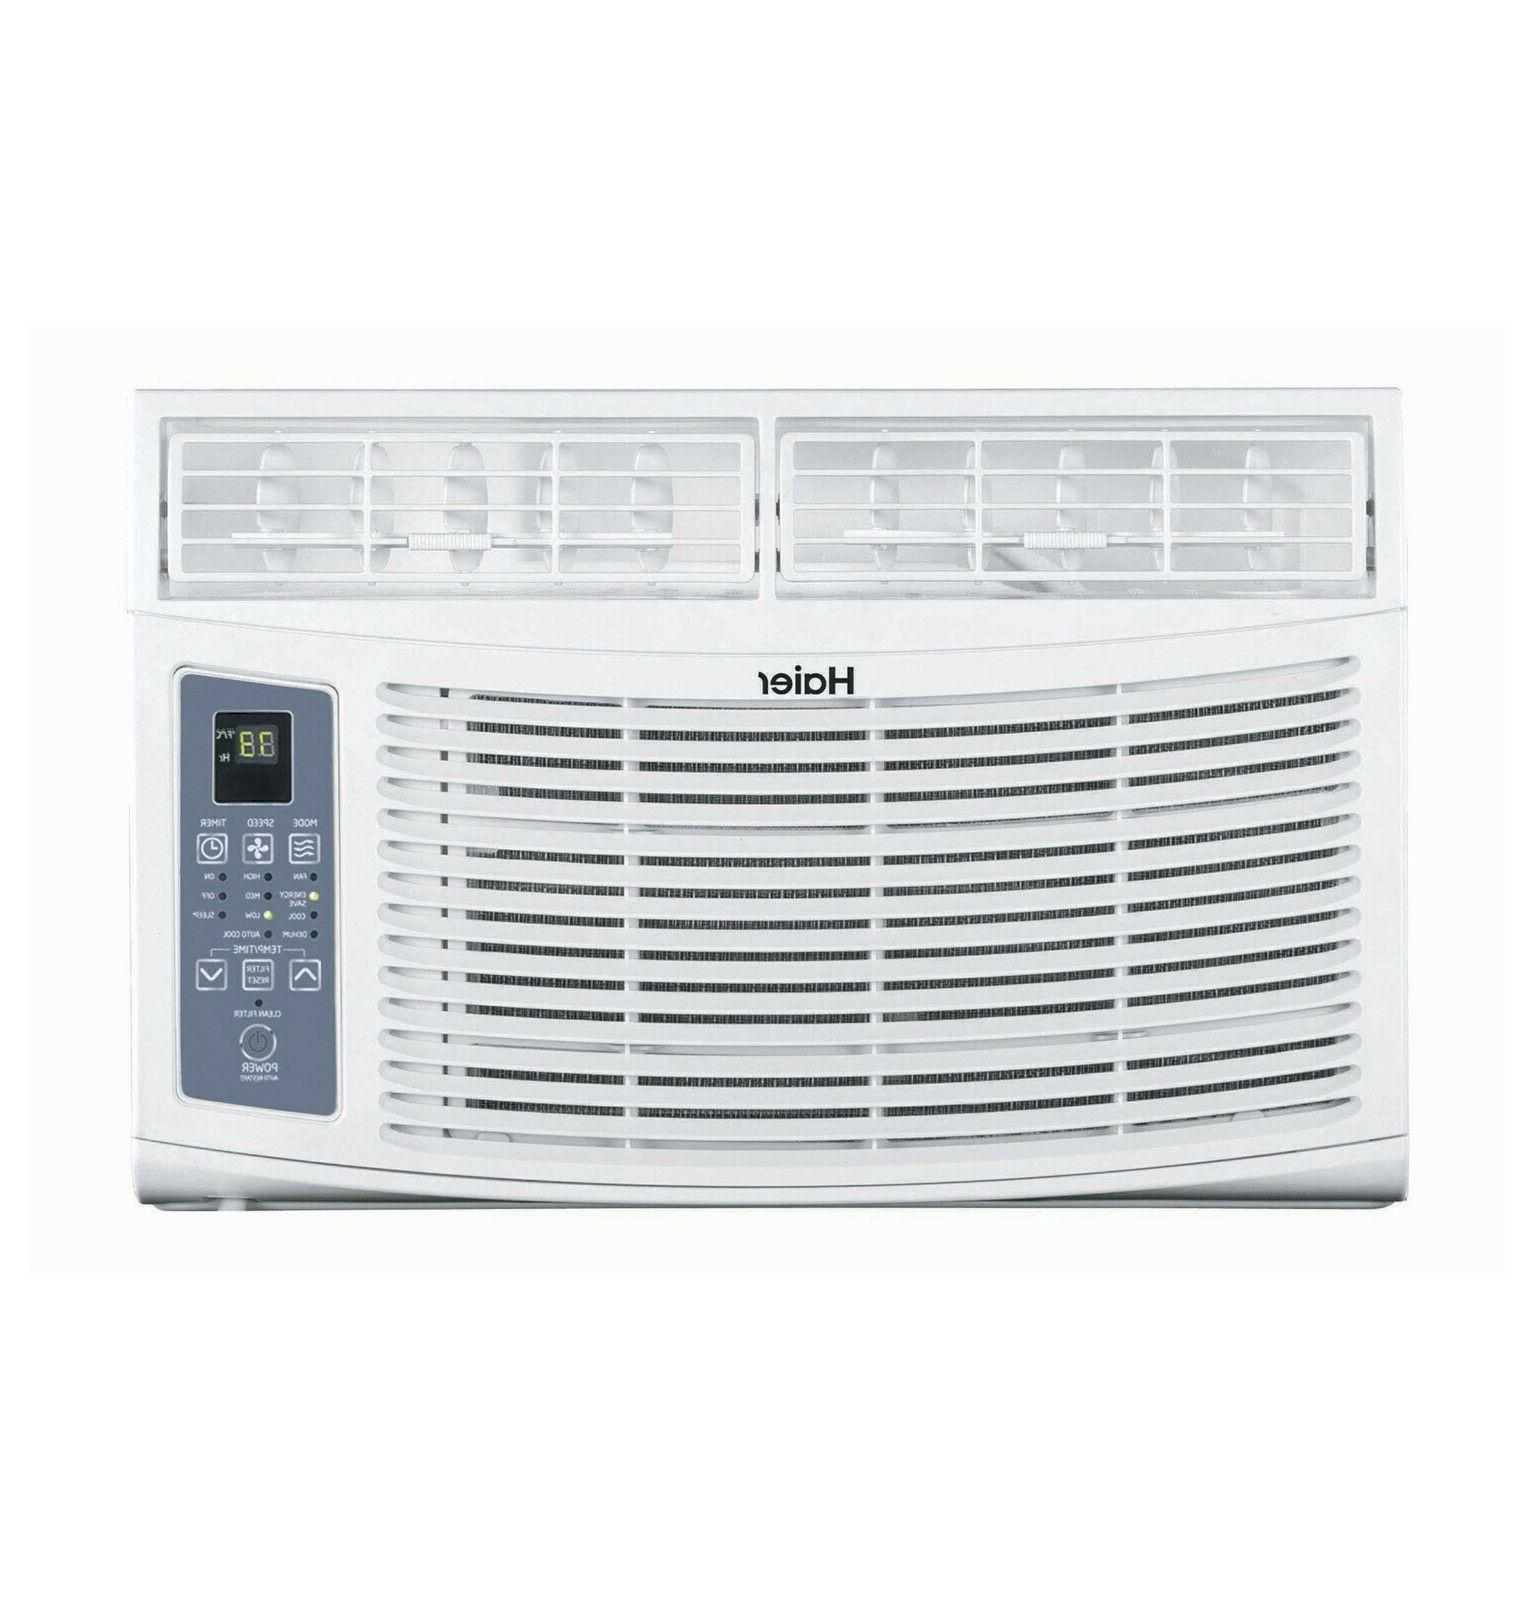 NEW HAIER 10000 BTU MODEL HWR10XCR-T WINDOW ROOM AIR CONDITI